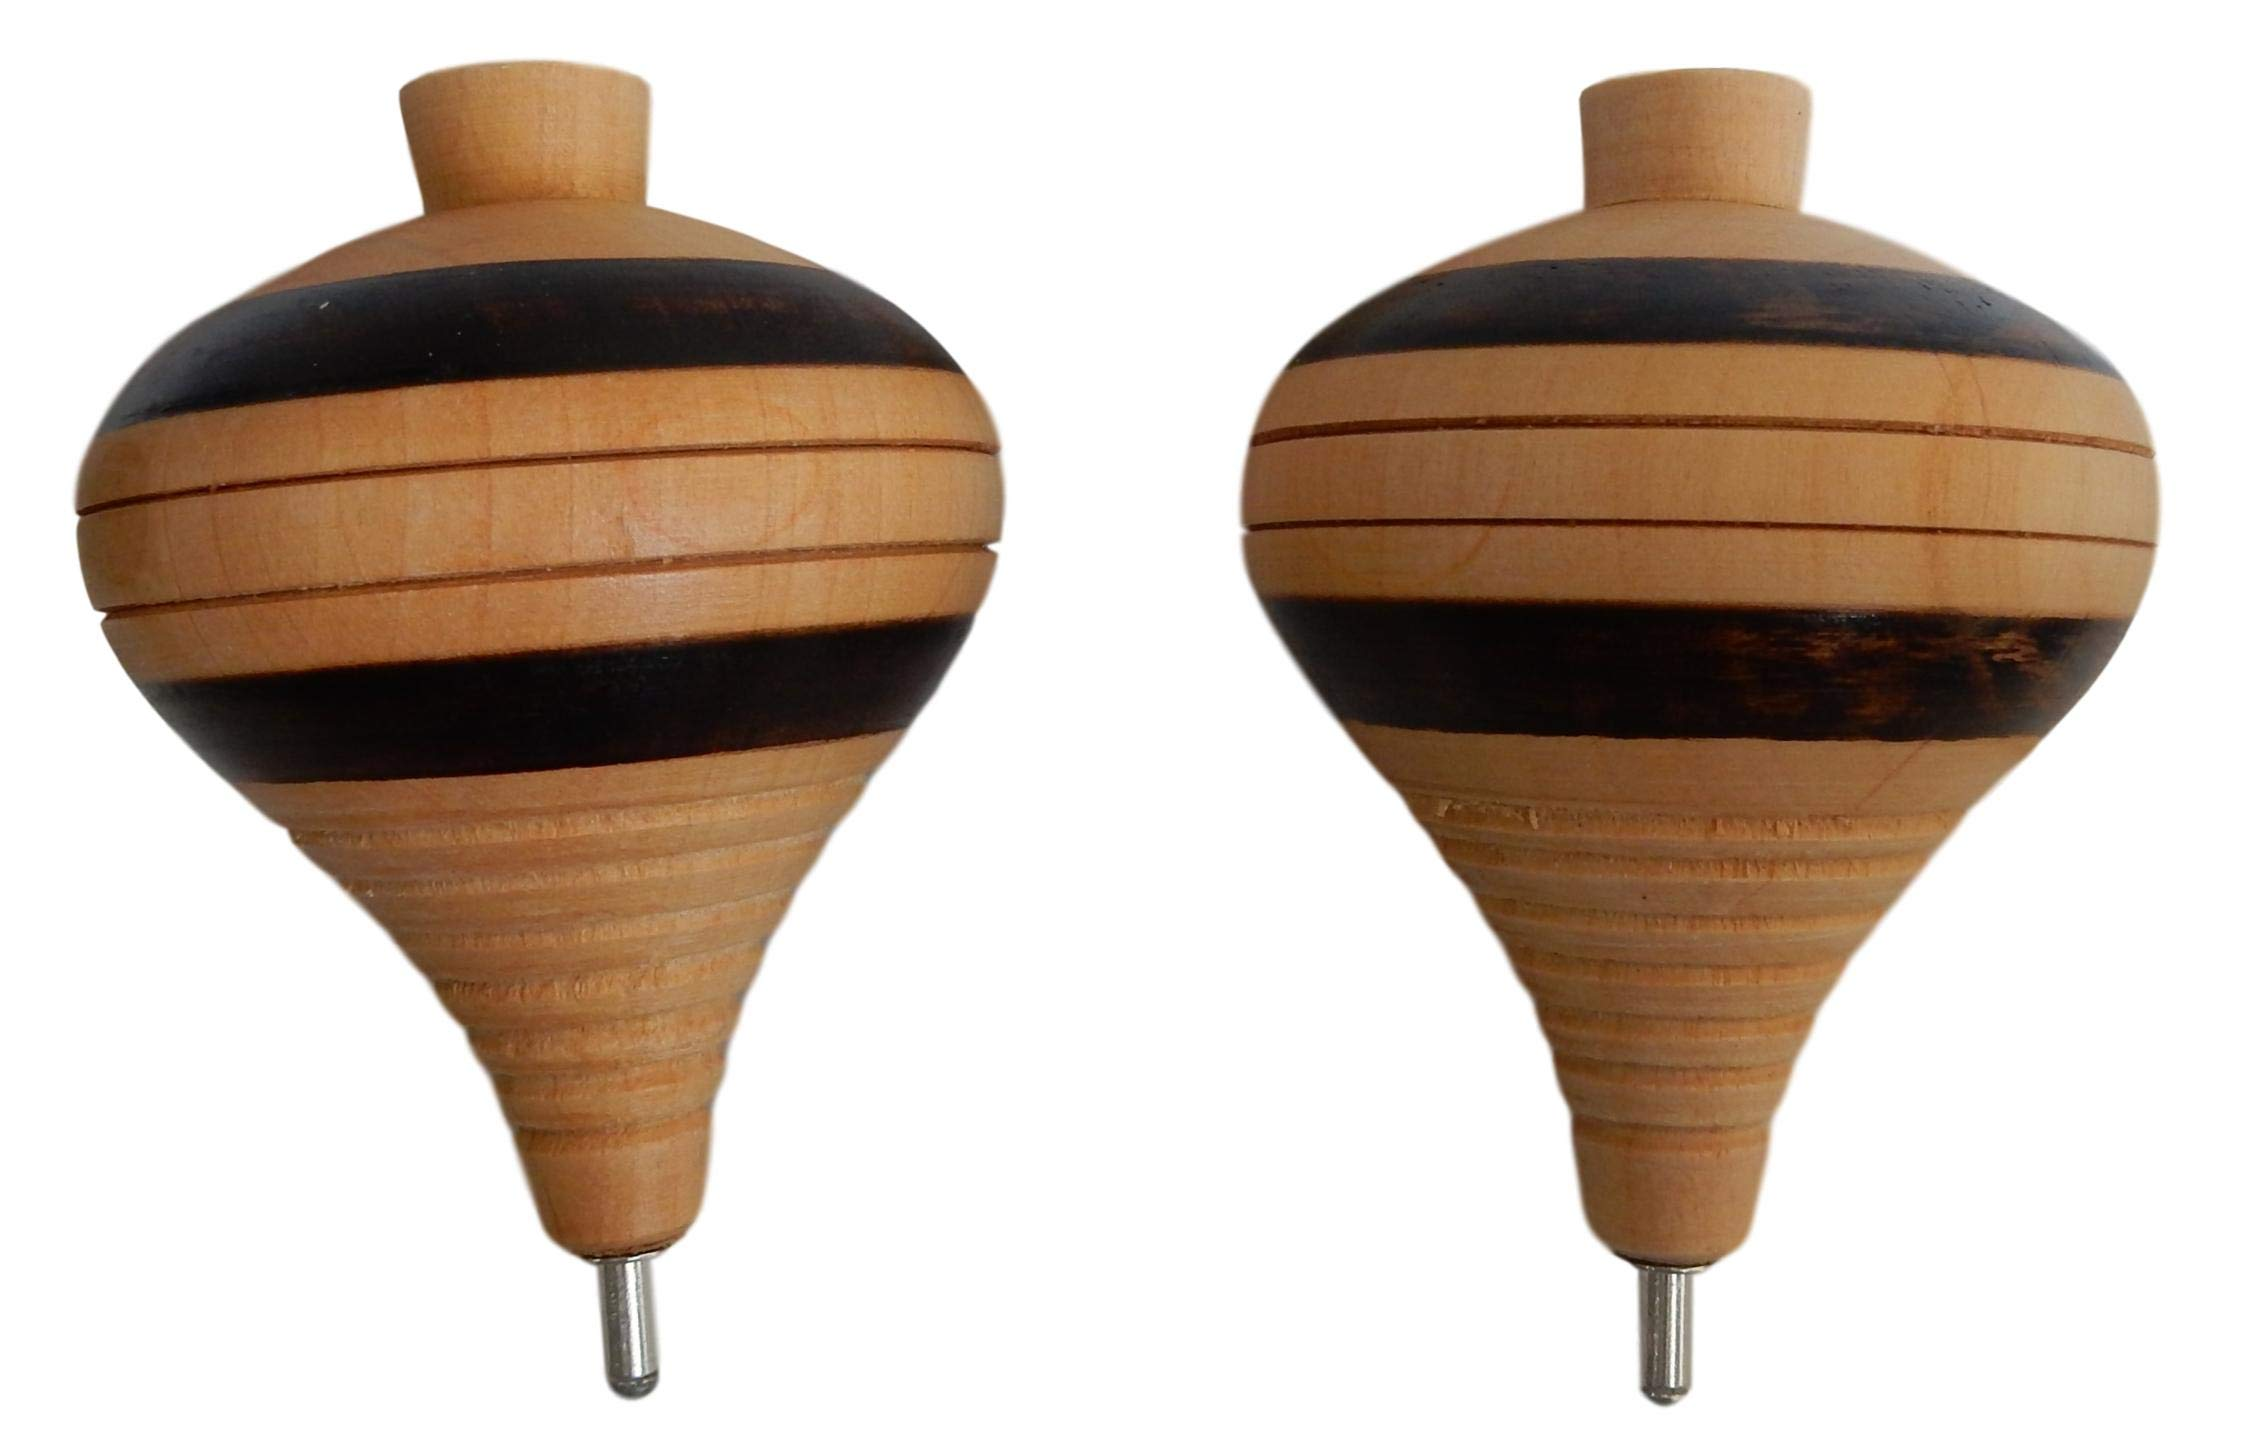 Mexican Trompos - 2 Pack Wooden Spin Tops Metal Tips Made in Mexico Premium Quality (2 Pack)